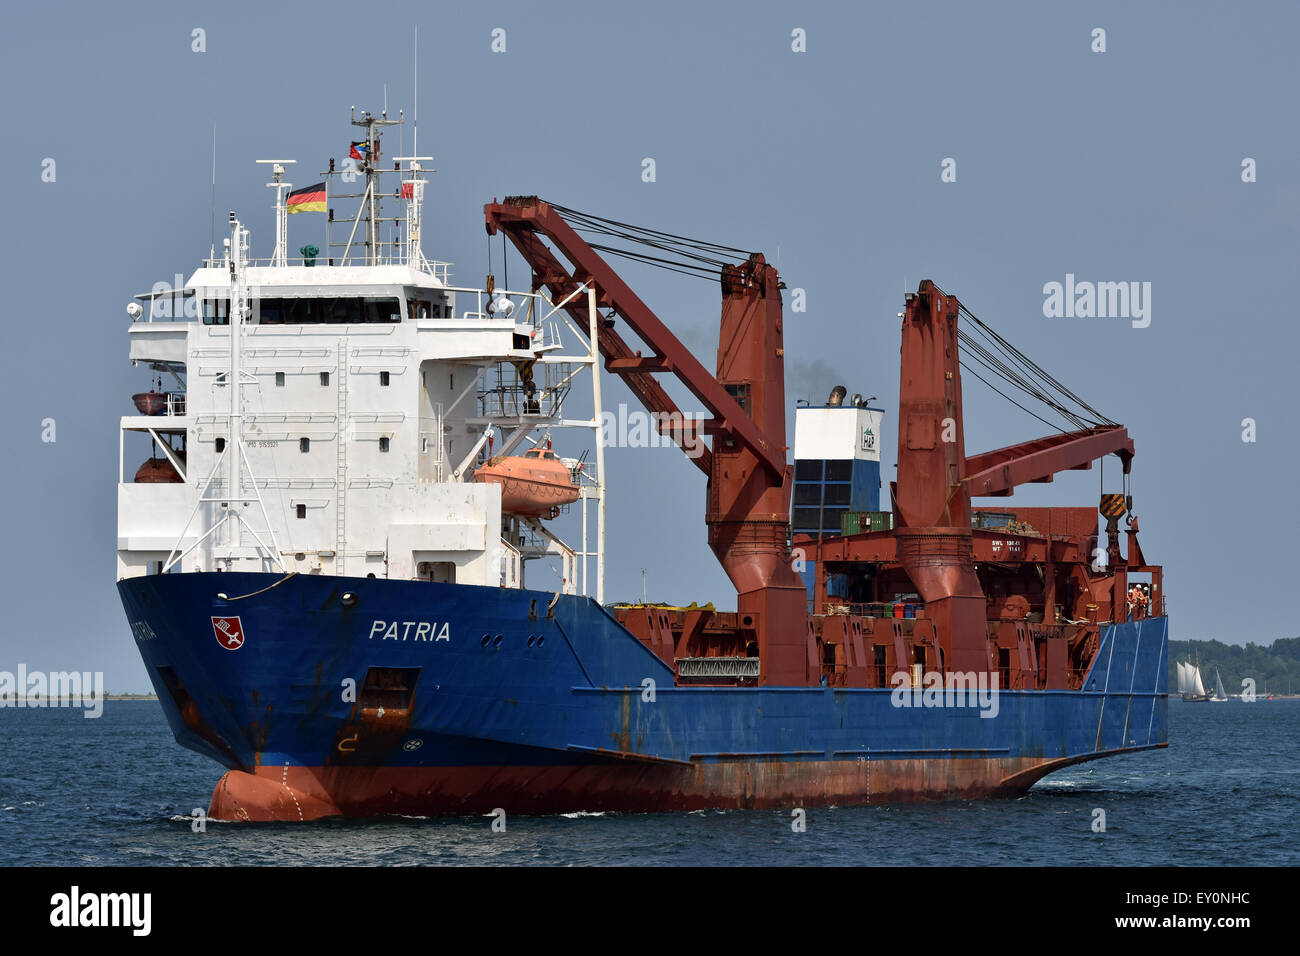 RoRo Cargo Ship Patria inbound for the Holtenau-Locks of Kiel-Canal - Stock Image